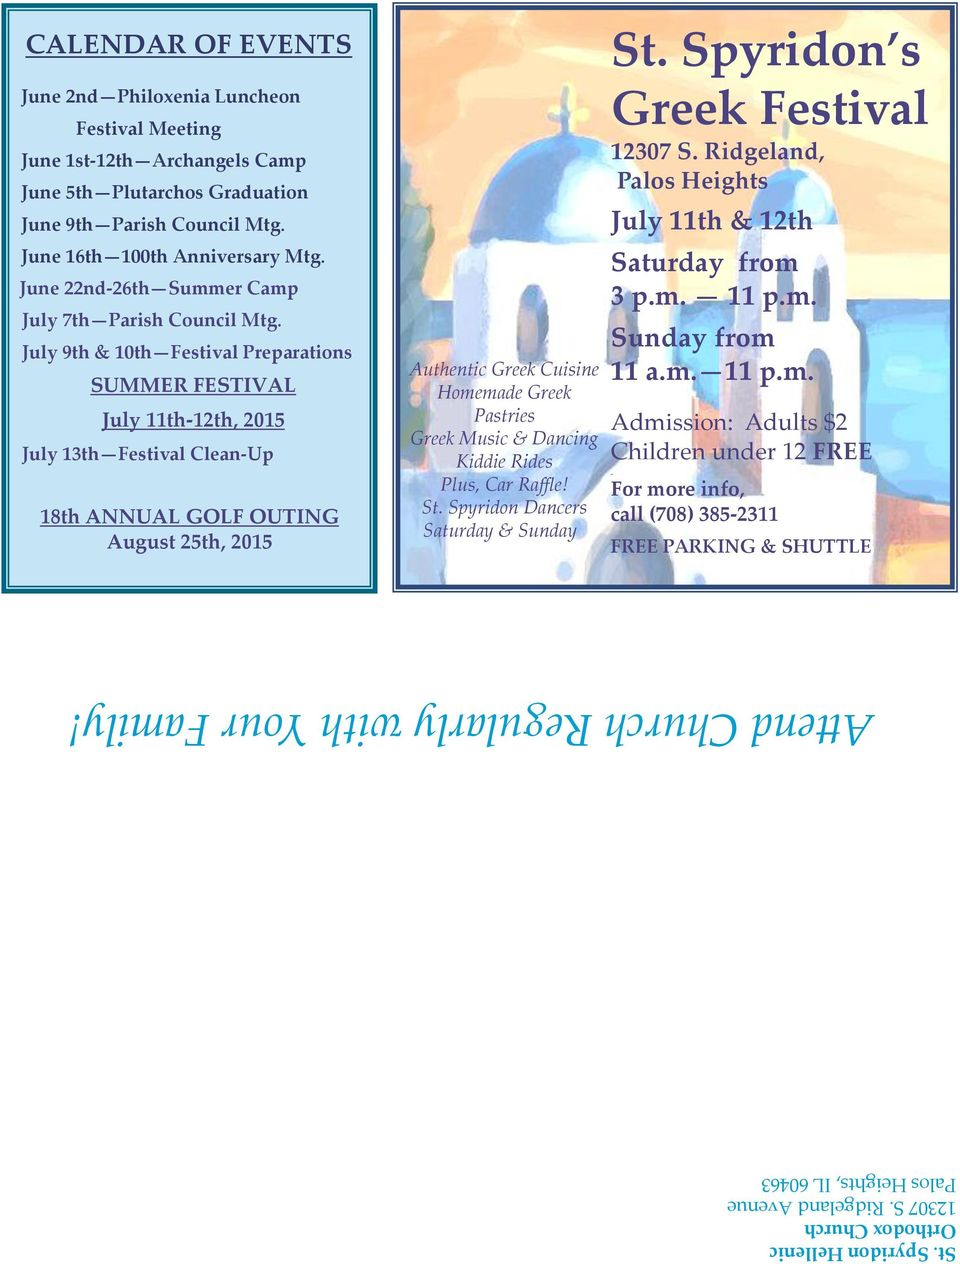 June 22nd-26th Summer Camp July 7th Parish Council Mtg.